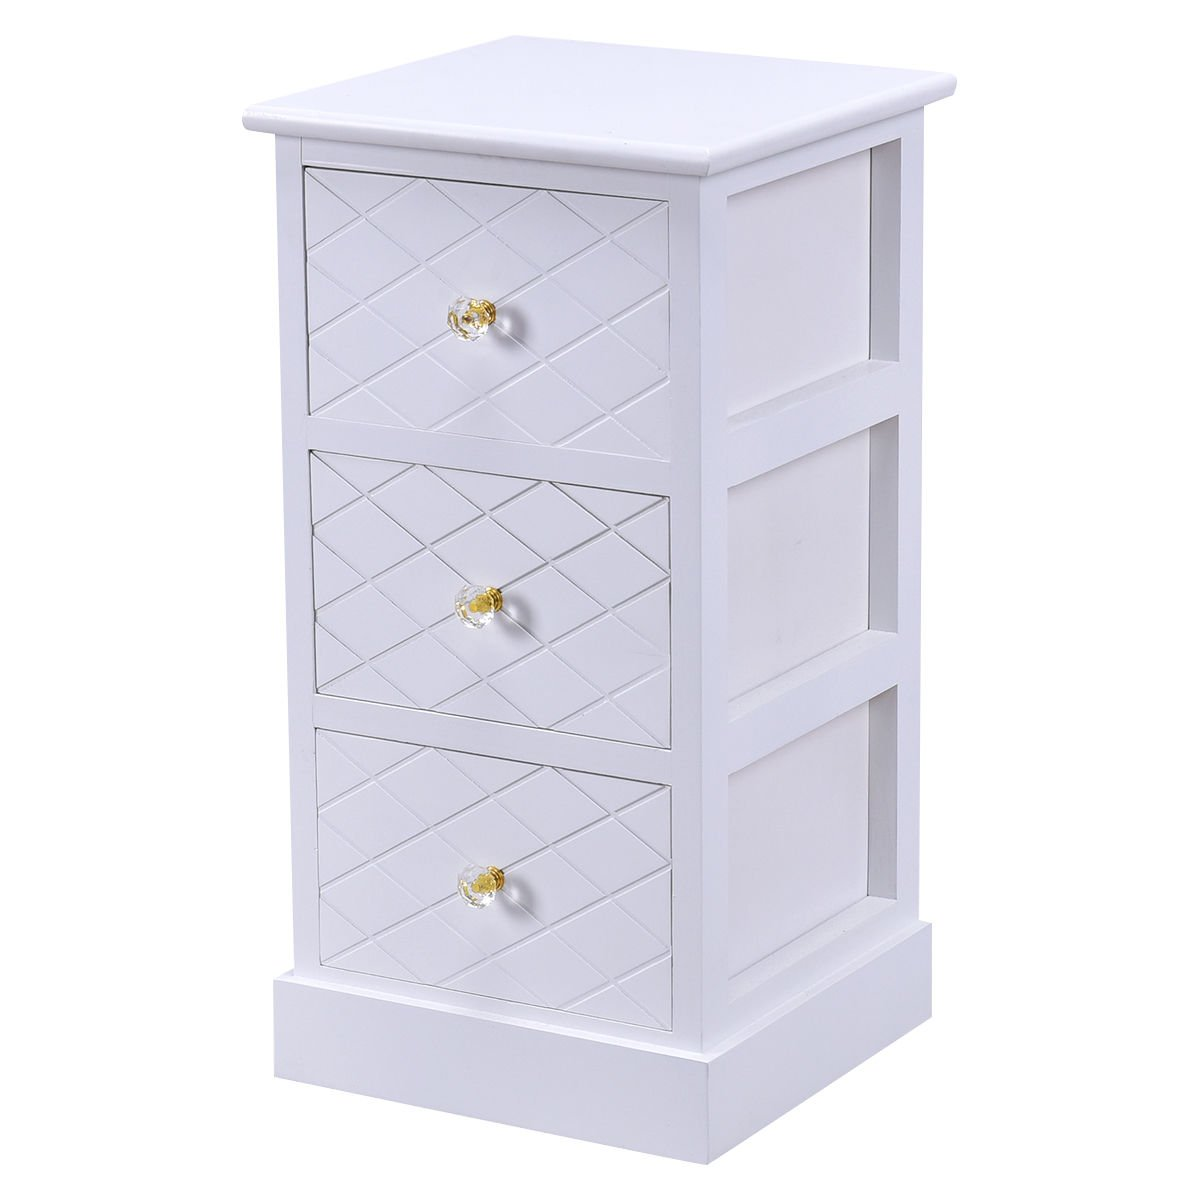 Wooden Cabinet 3 Drawers Bedside Chest Table Storage End Table Bedroom Furniture Whiite